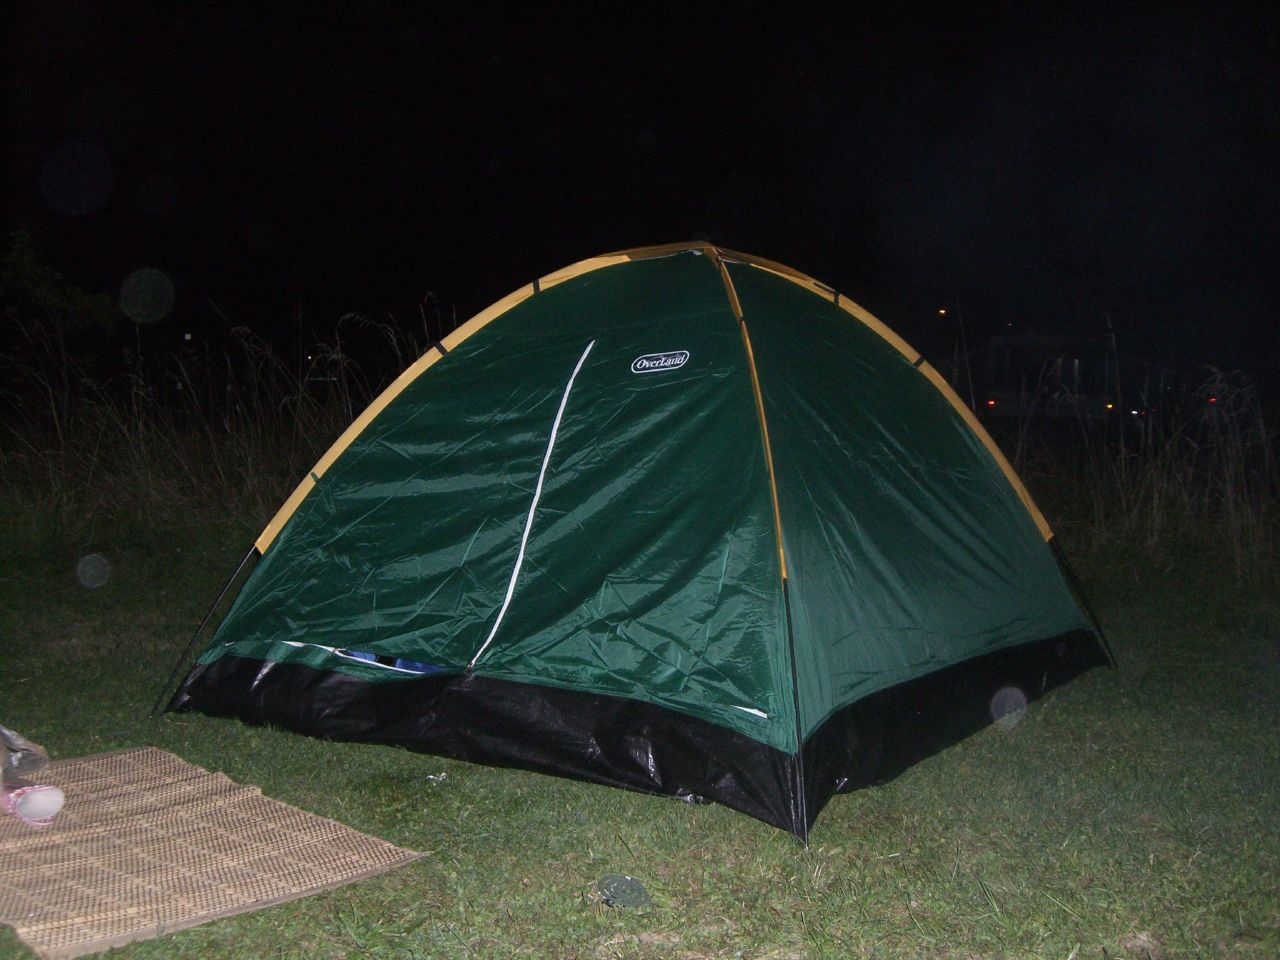 Our small little tent